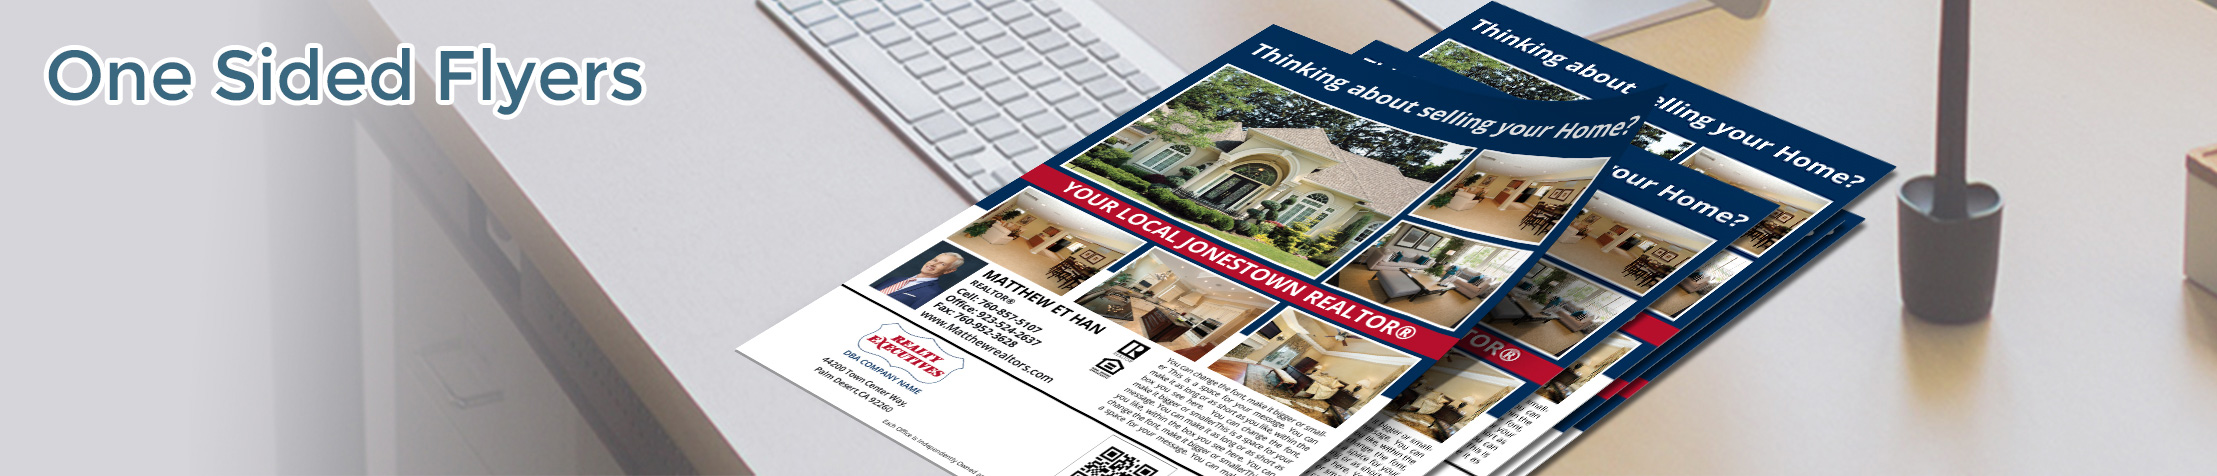 Realty Executives Real Estate Flyers and Brochures - Realty Executives  one-sided flyer templates for open houses and marketing | BestPrintBuy.com